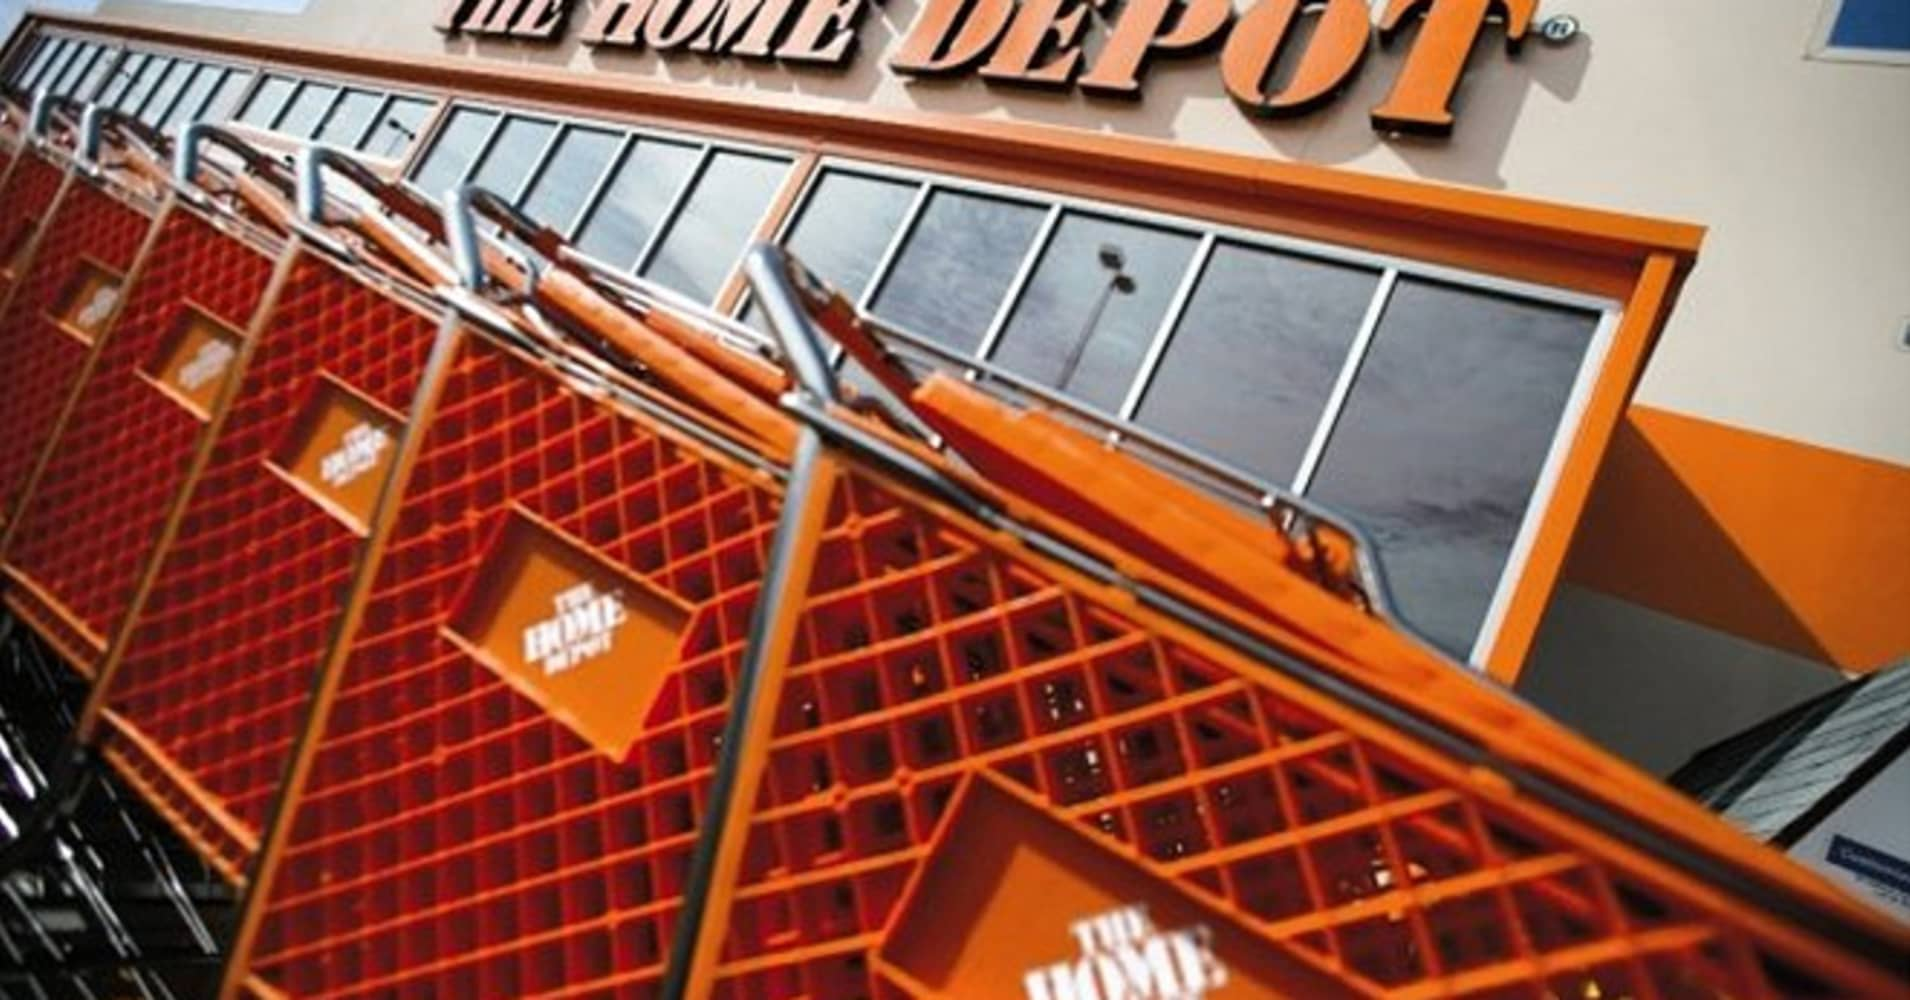 home depot earnings top views sets share buyback - Home Depot